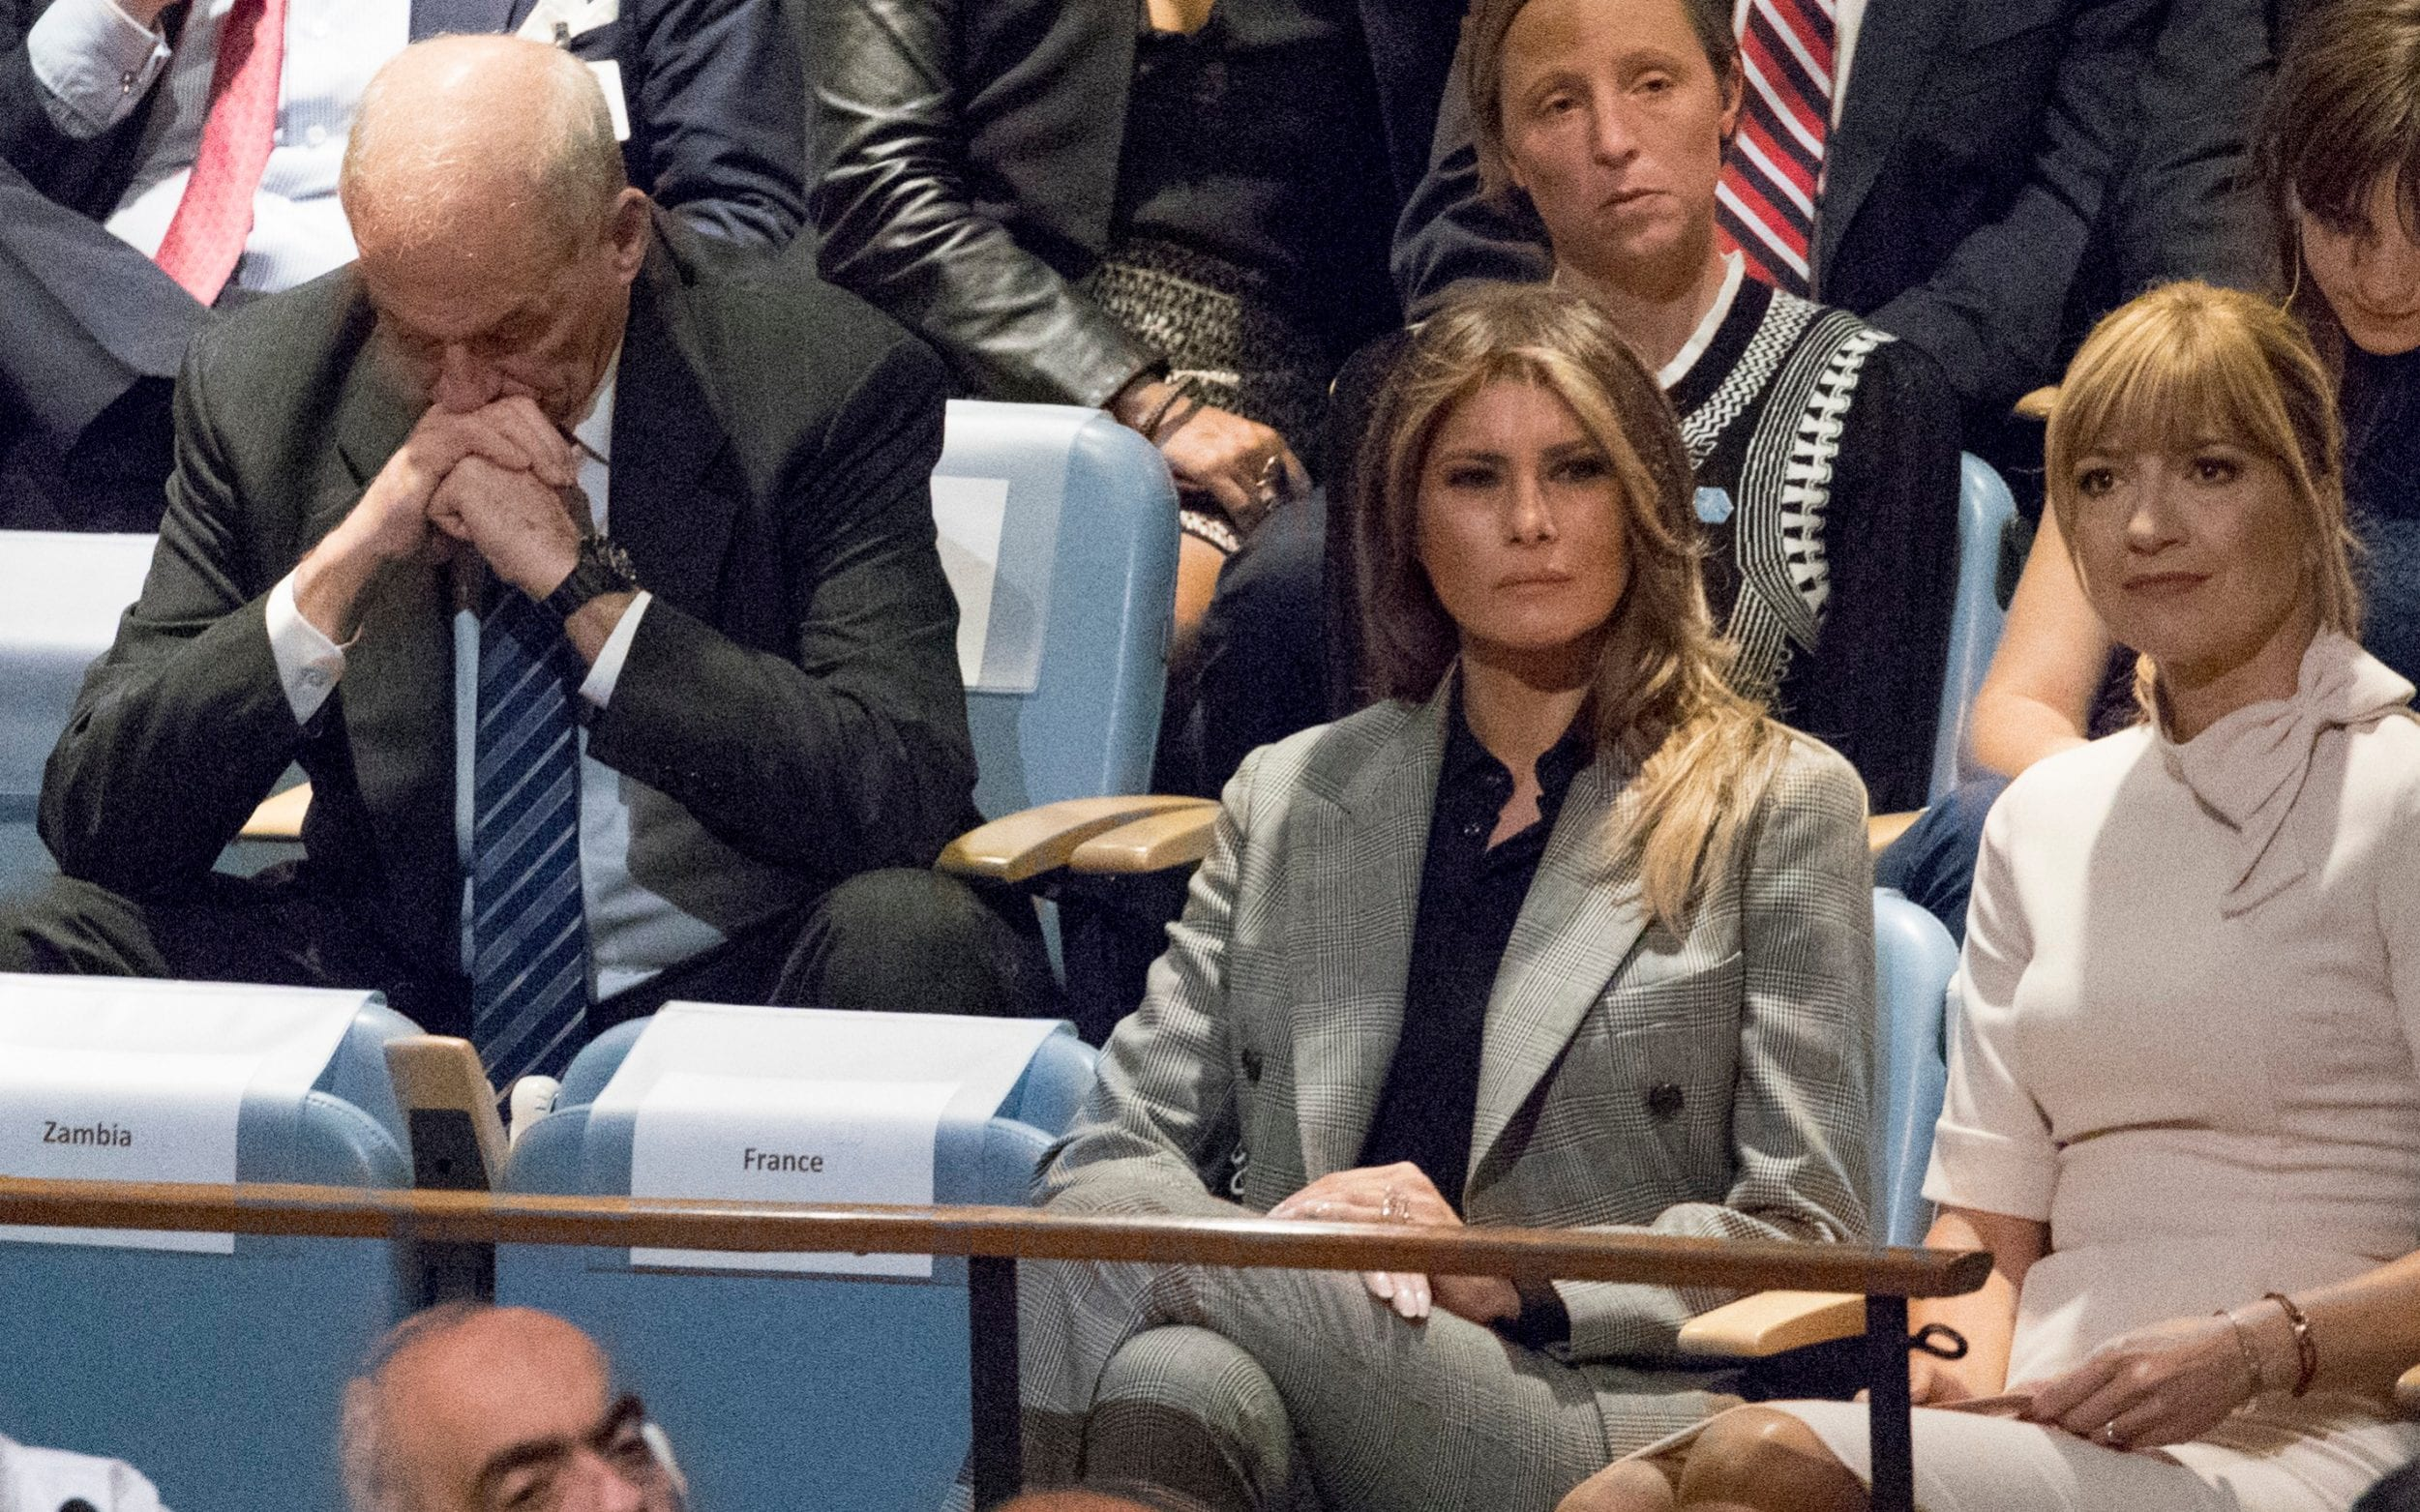 White House Chief of Staff John Kelly, left, reacts as he and first lady Melania Trump listen to U.S. President Donald Trump speak at the United Nations General Assembly